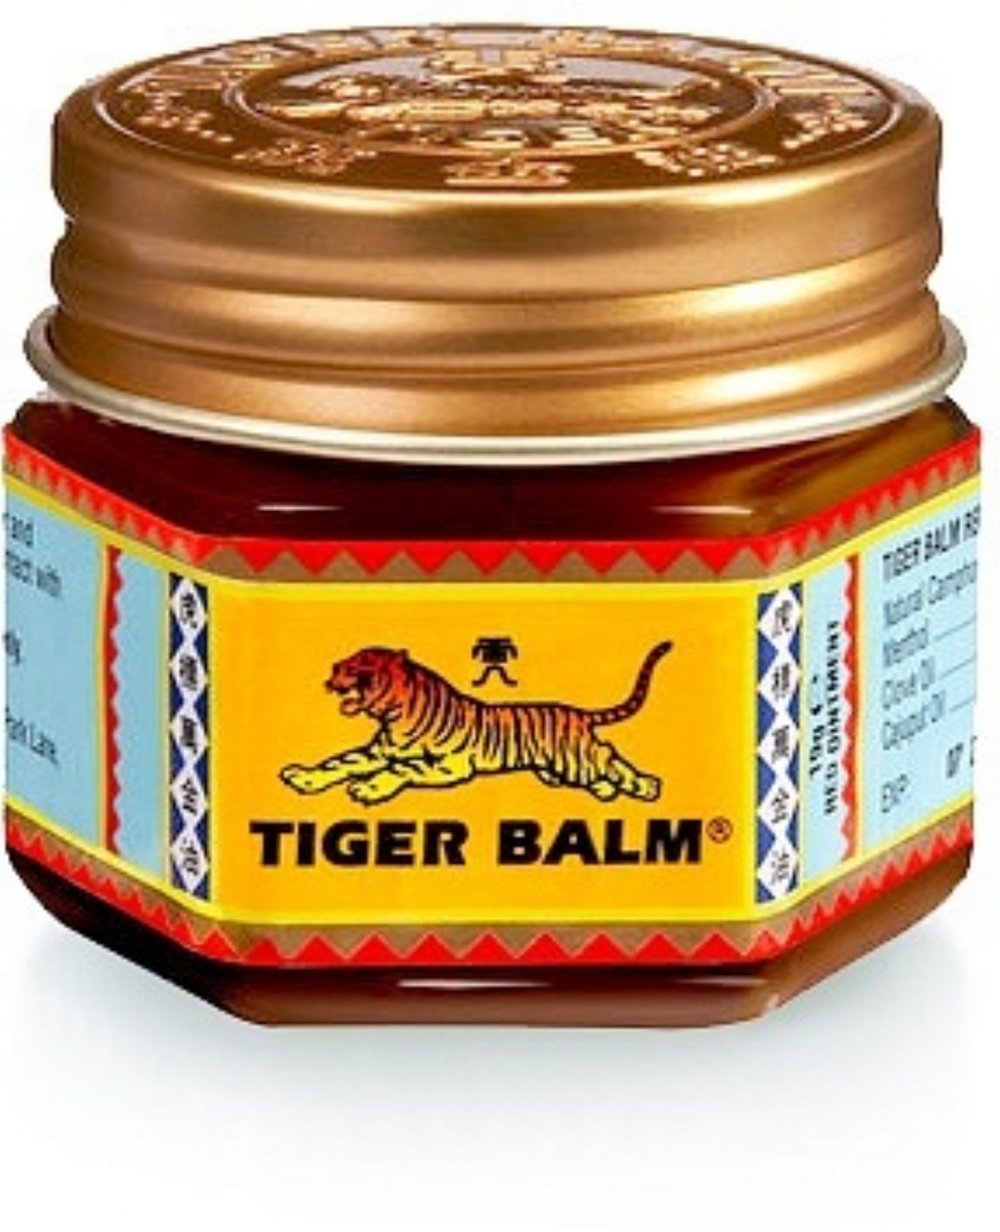 the original tiger balm from thailand is the ultimate sports massage rub for fast recovery of sore muscles from over exertion.